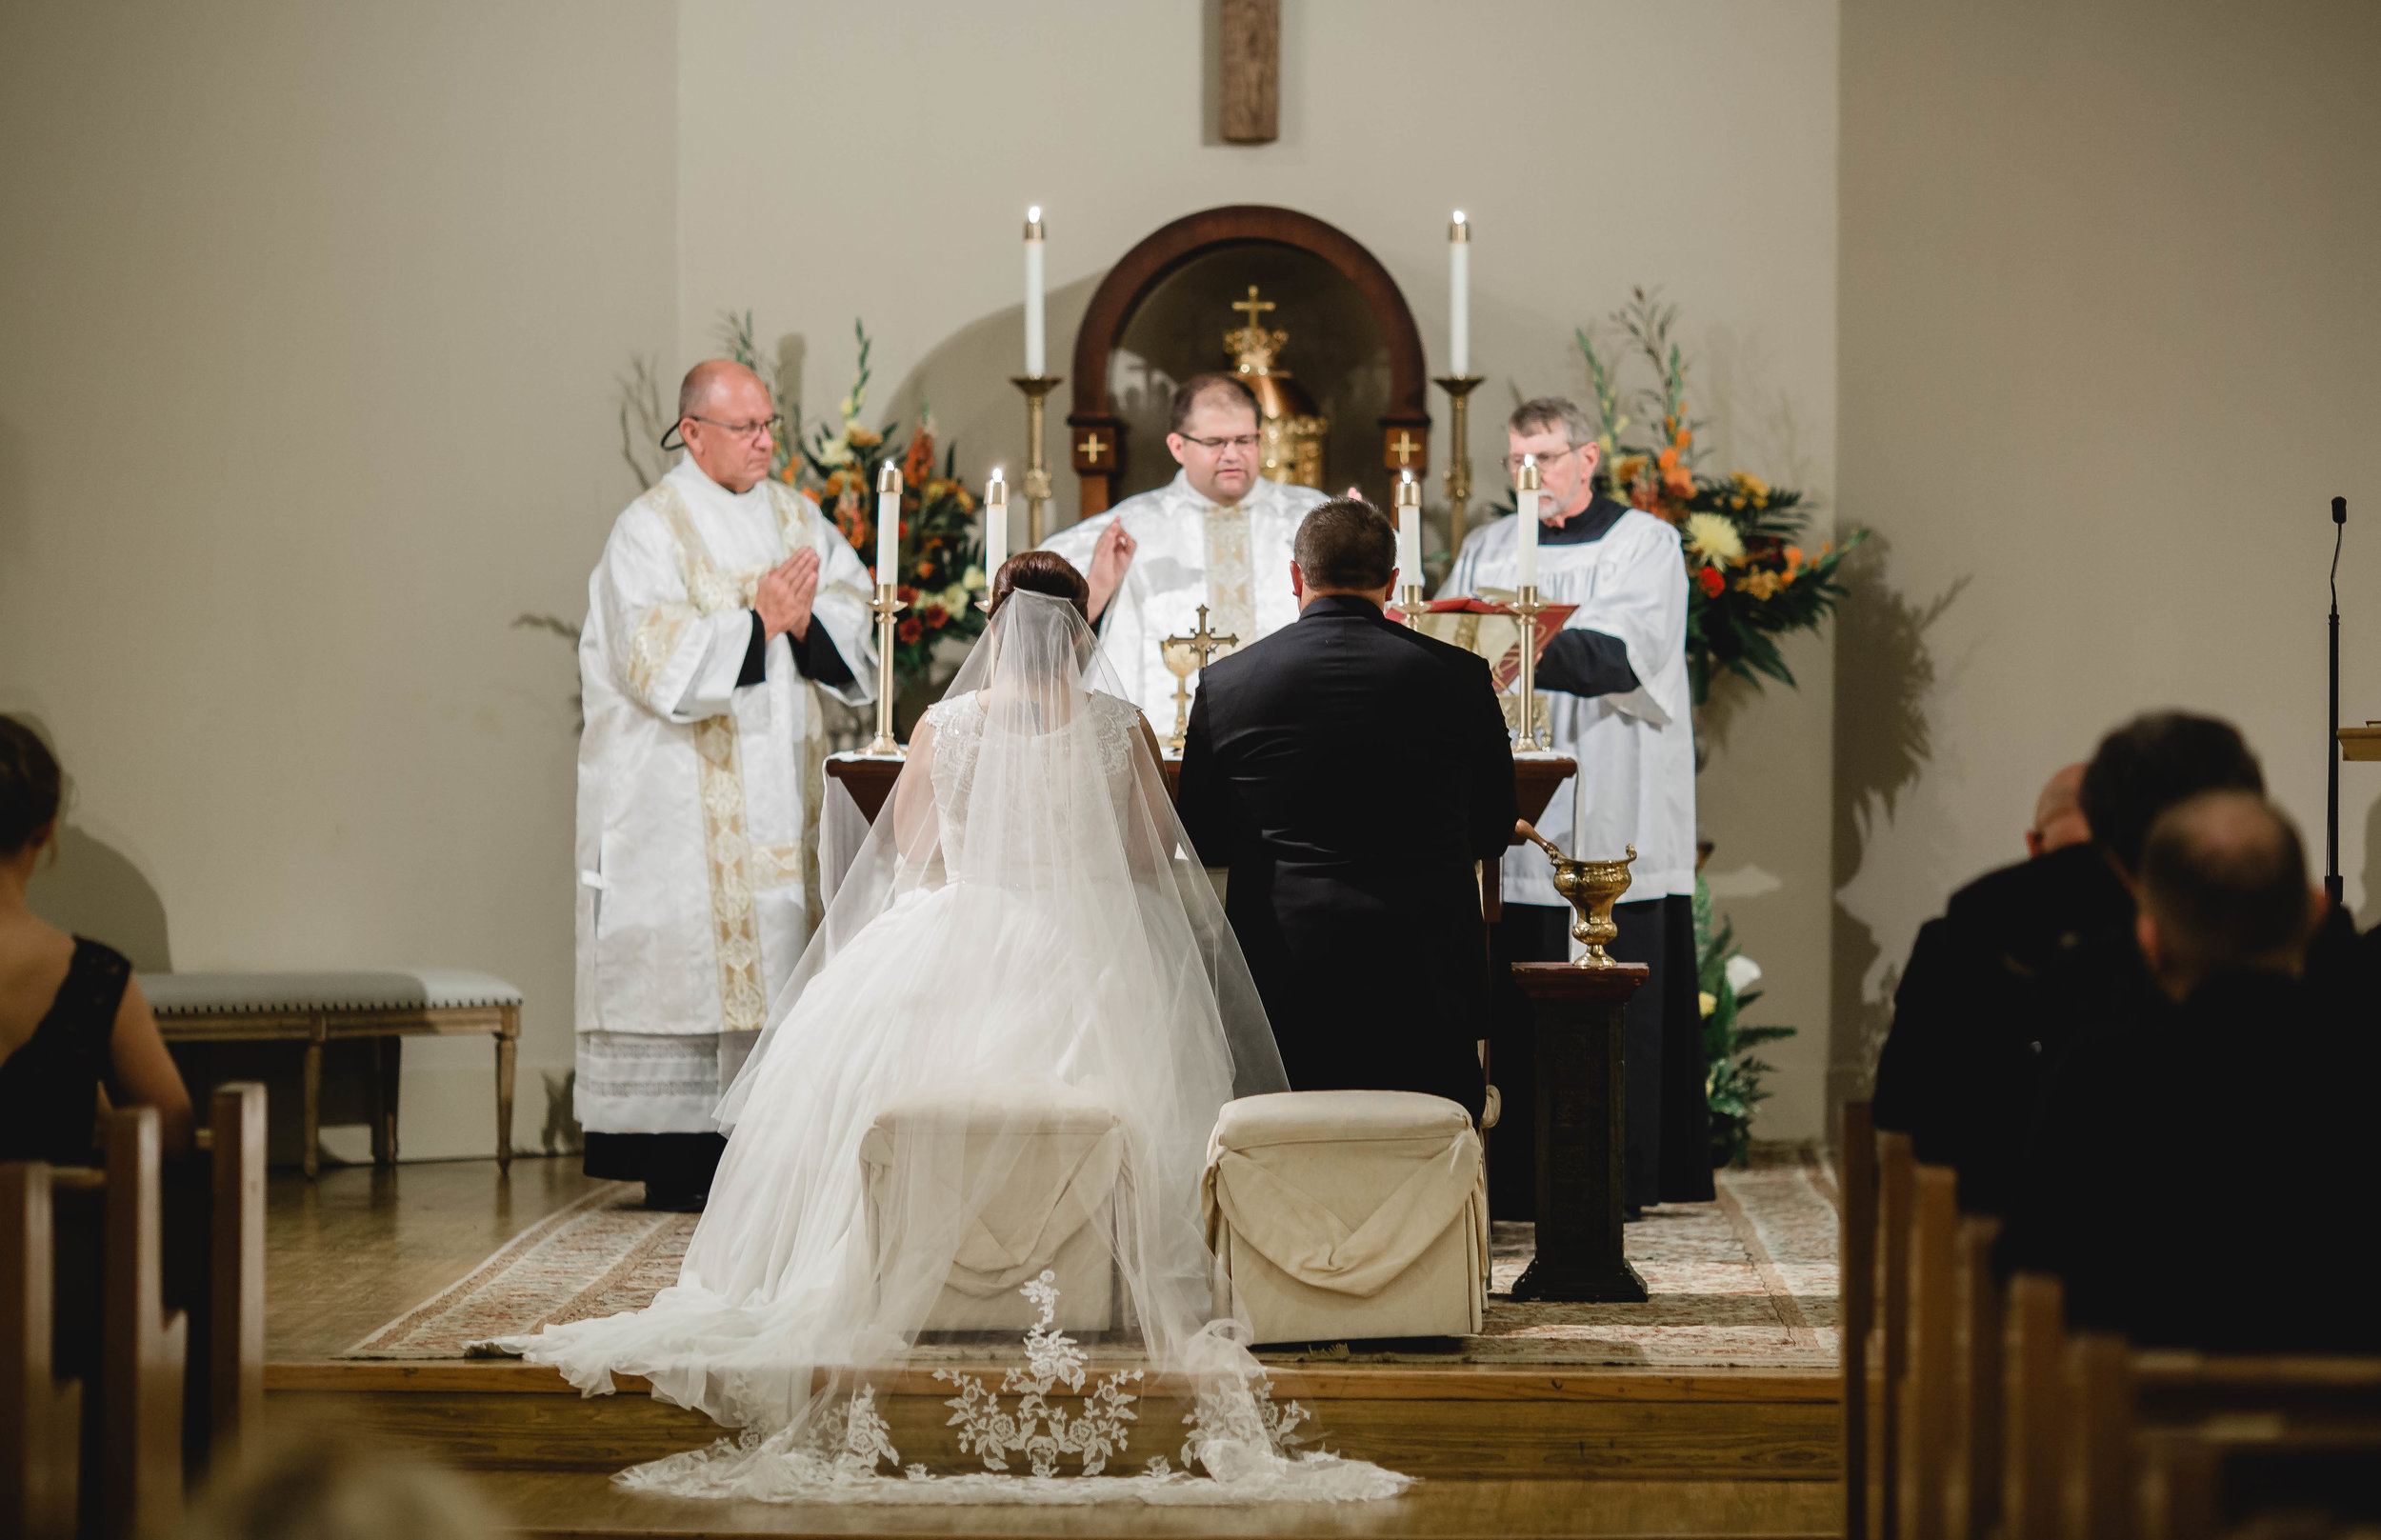 Wedding with a full mass